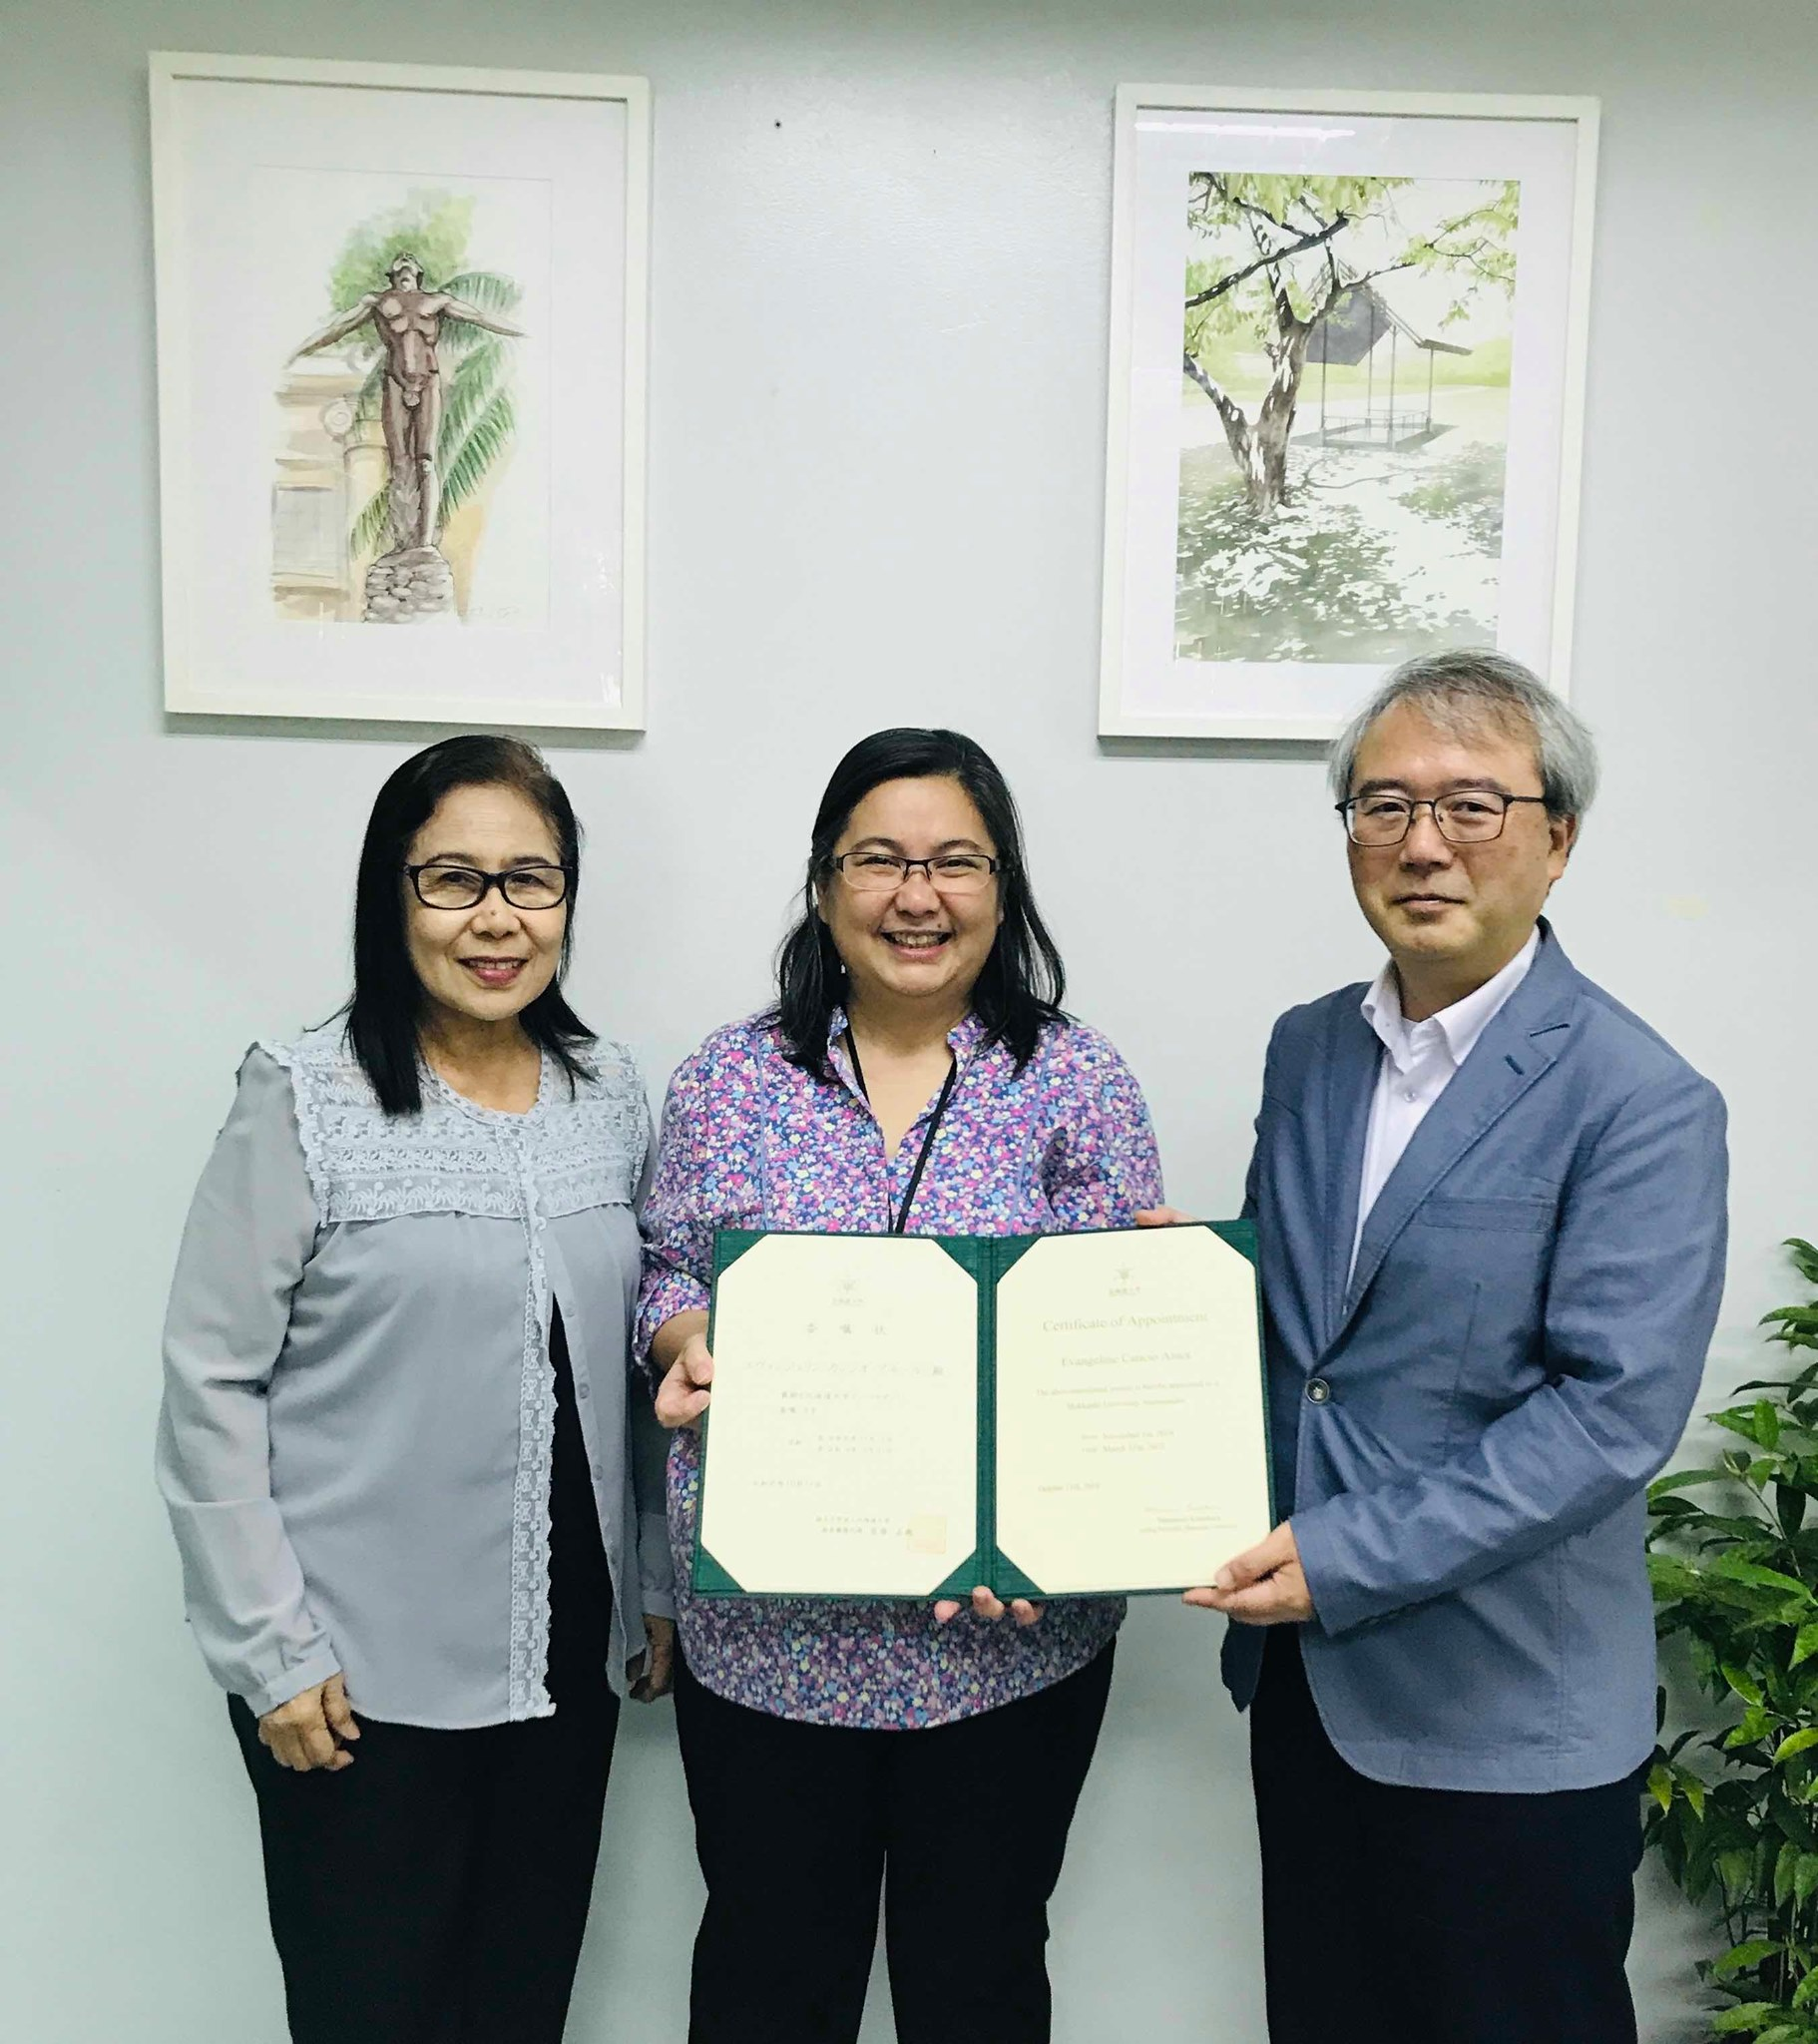 Dr. Evangeline Cancio Amor, Head of the Liaison Office in the Philippines, appointed as a Hokkaido University Ambassador